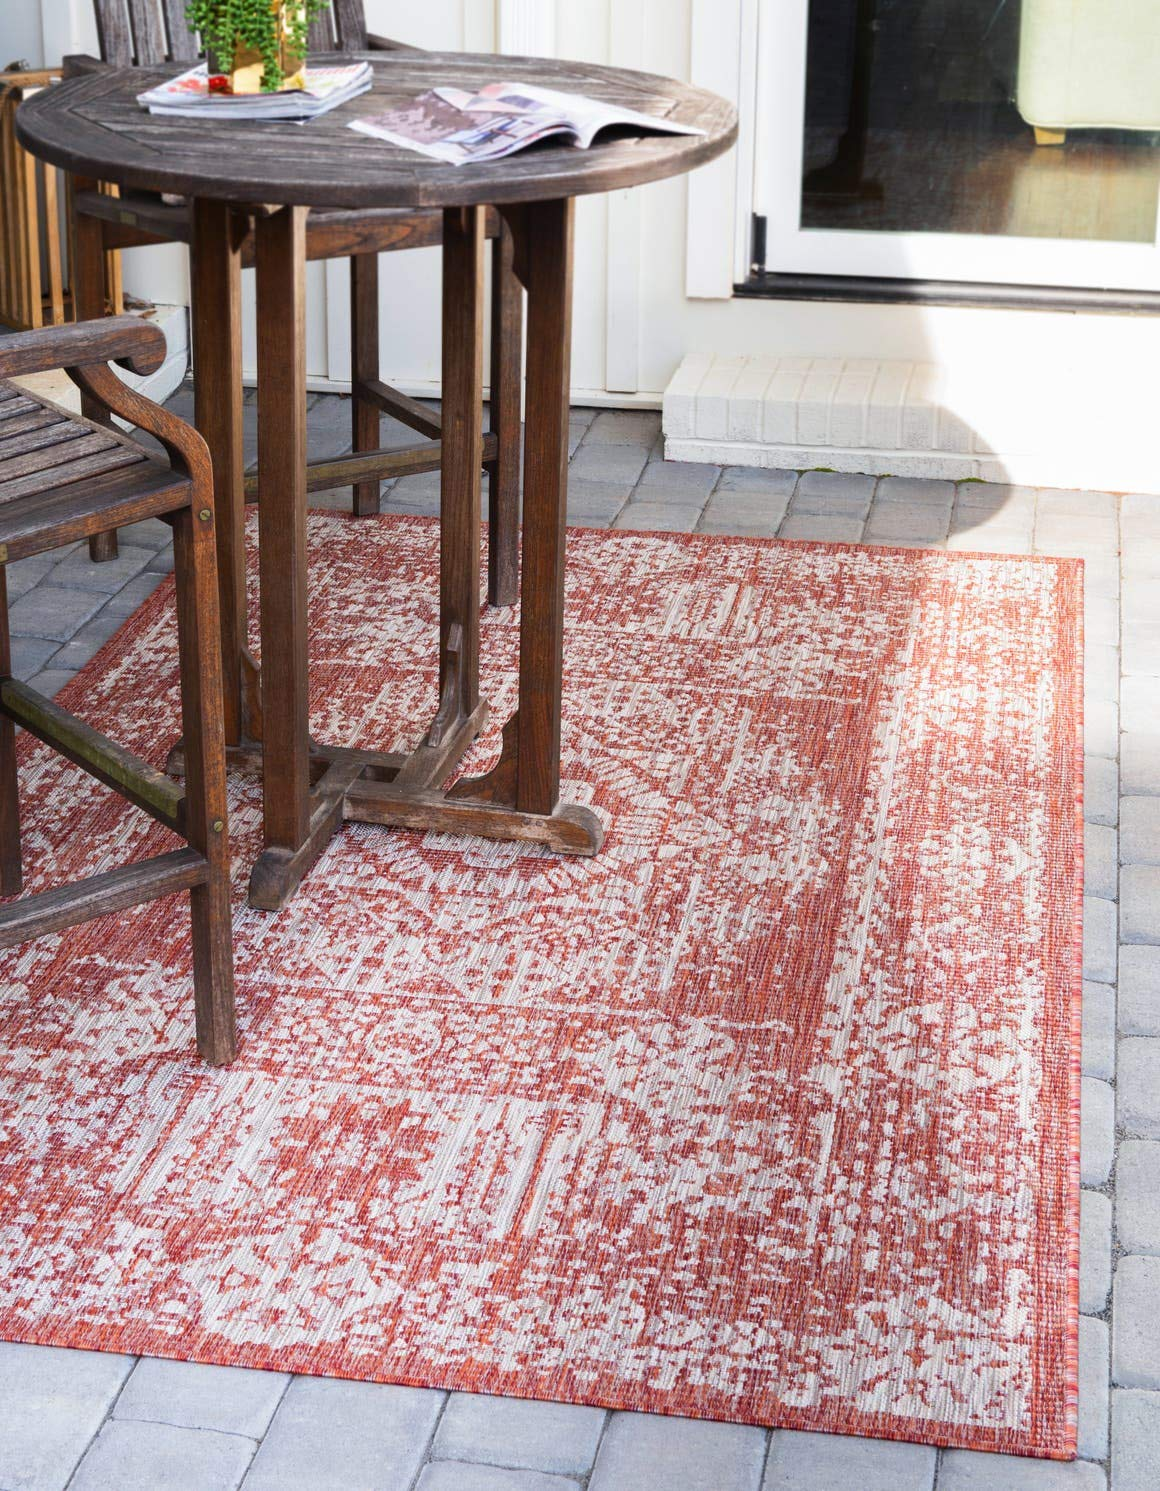 Unique Loom Outdoor Traditional Collection Distressed Vintage Medallion Transitional Indoor and Outdoor Flatweave Rust Red Area Rug 4 0 x 6 0